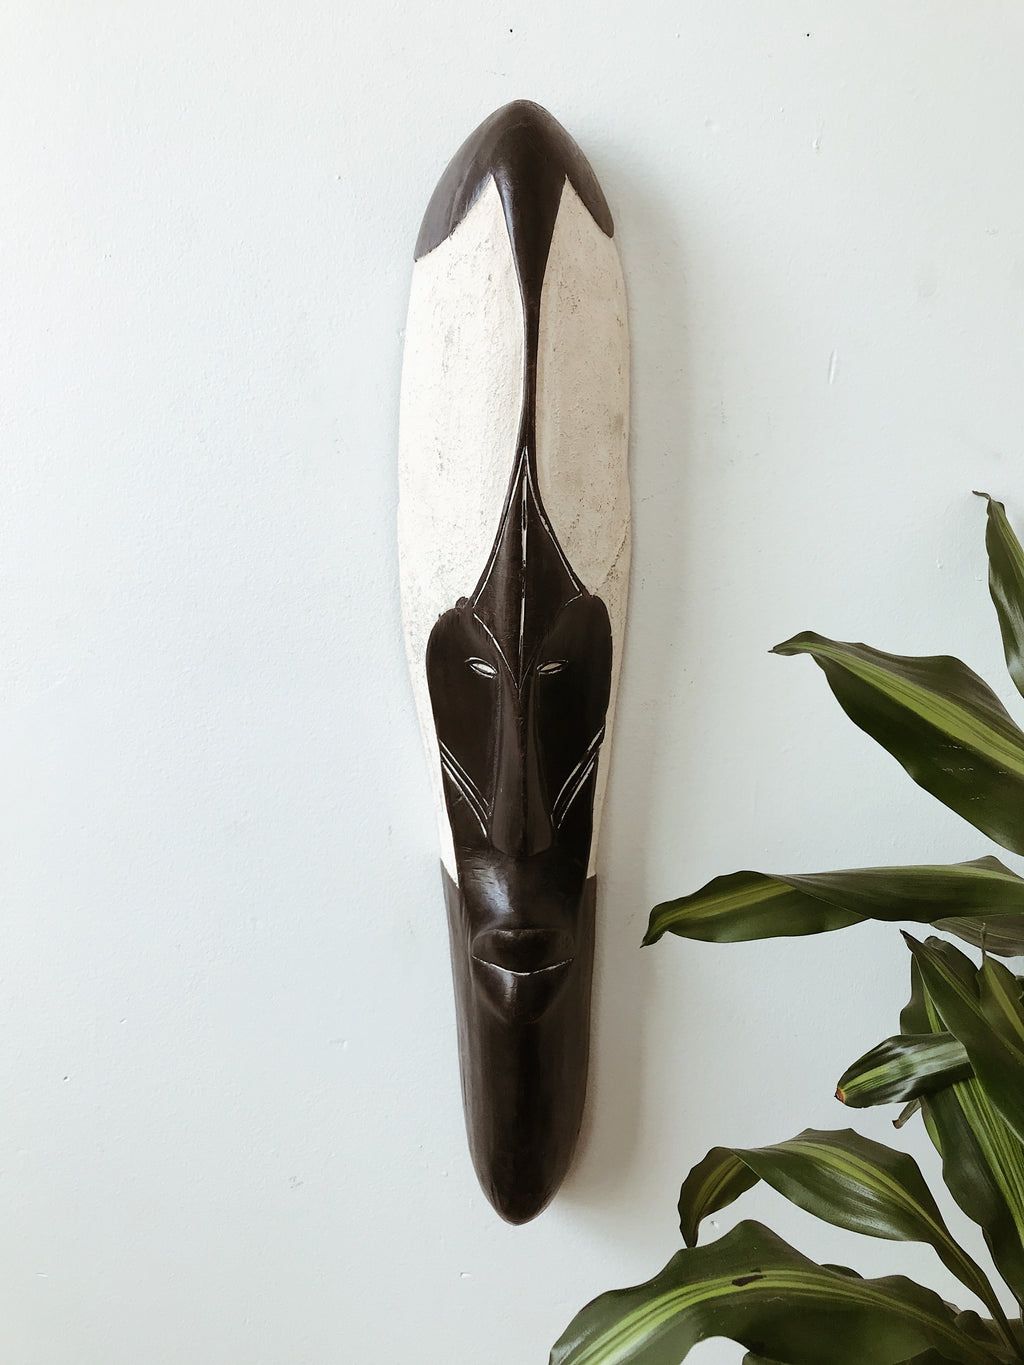 Long Cameroon Fang Mask // Black & White